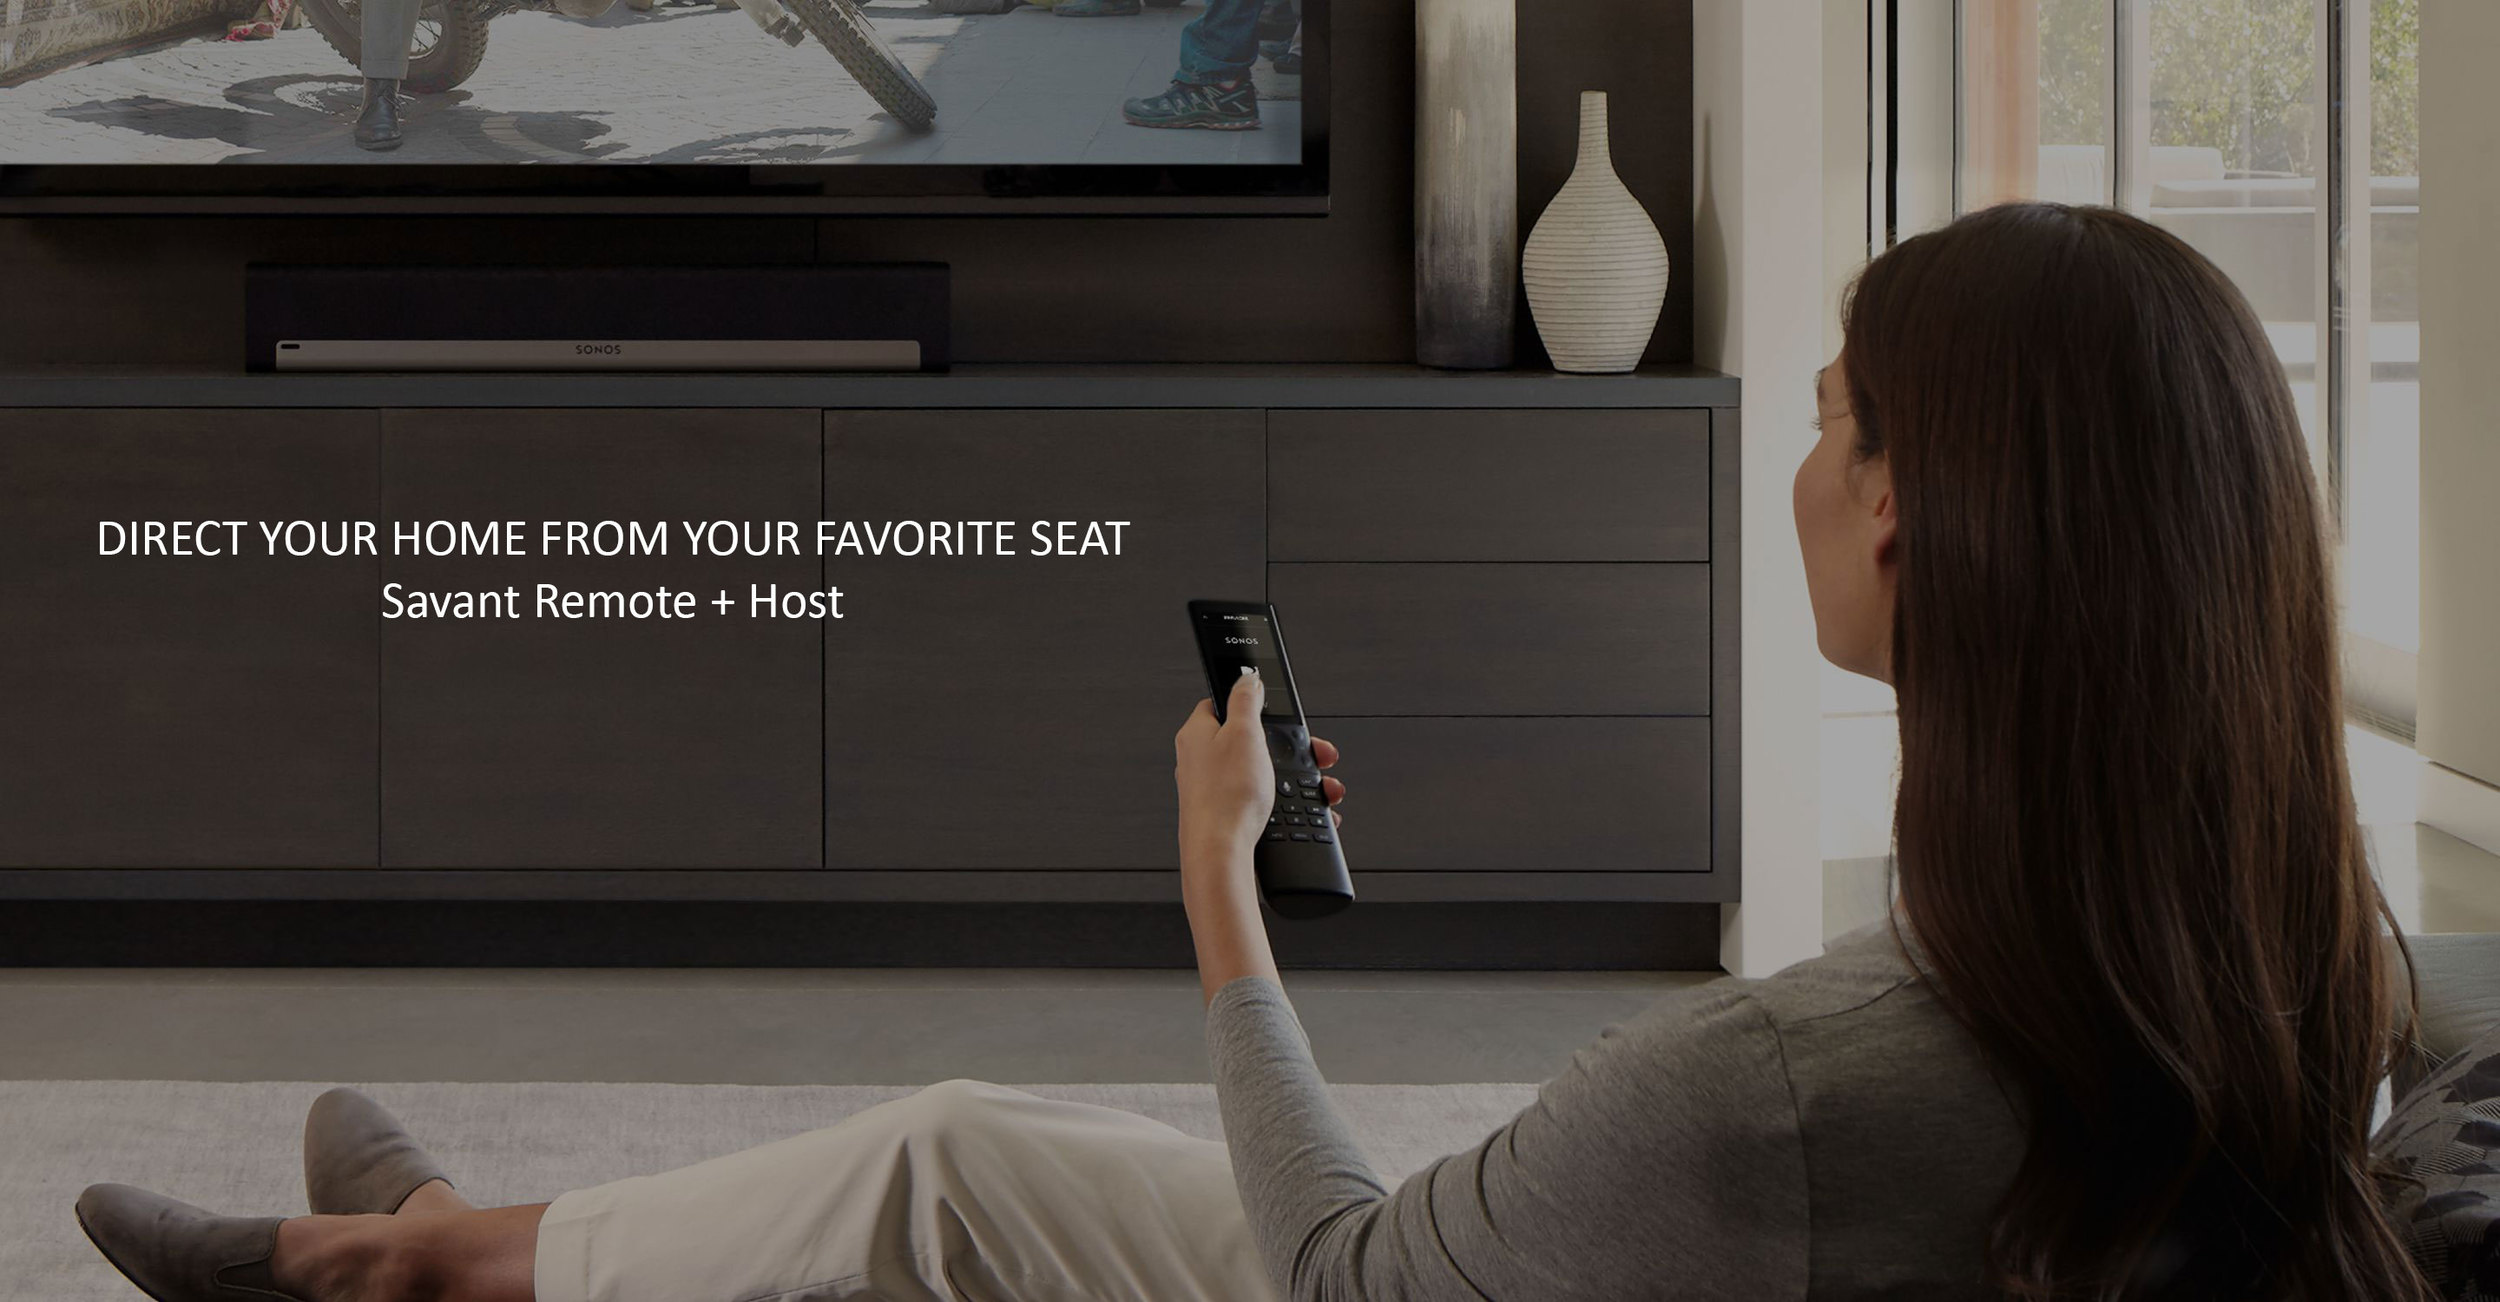 DIRECT YOUR HOME FROM YOUR FAVORITE SEAT